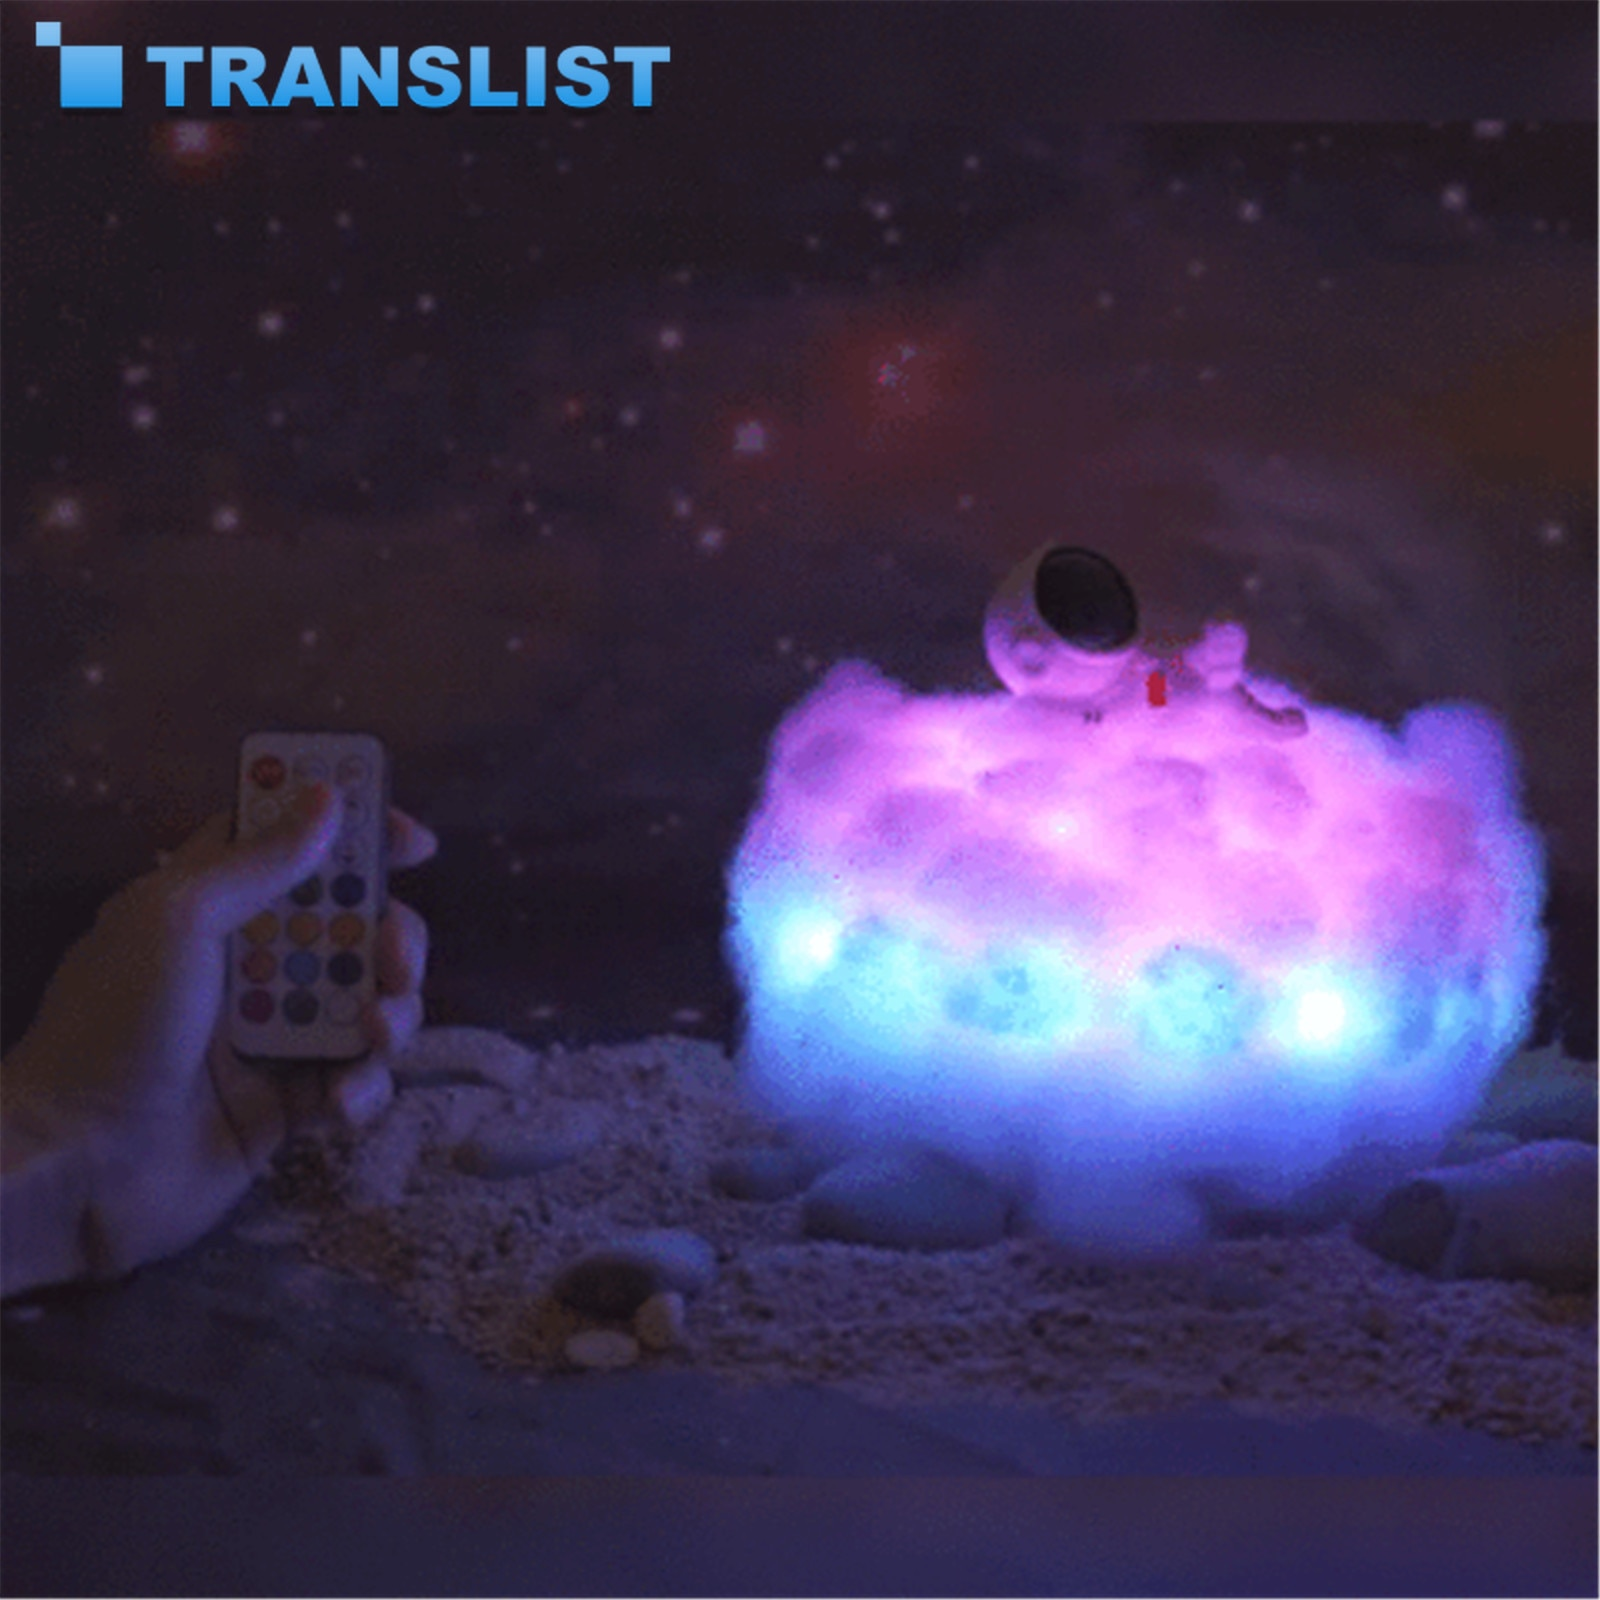 New Dropship- Special LED Colorful Clouds Astronaut Lamp With Rainbow Effect As Children's Night Light Creative Gift In 2020 enlarge